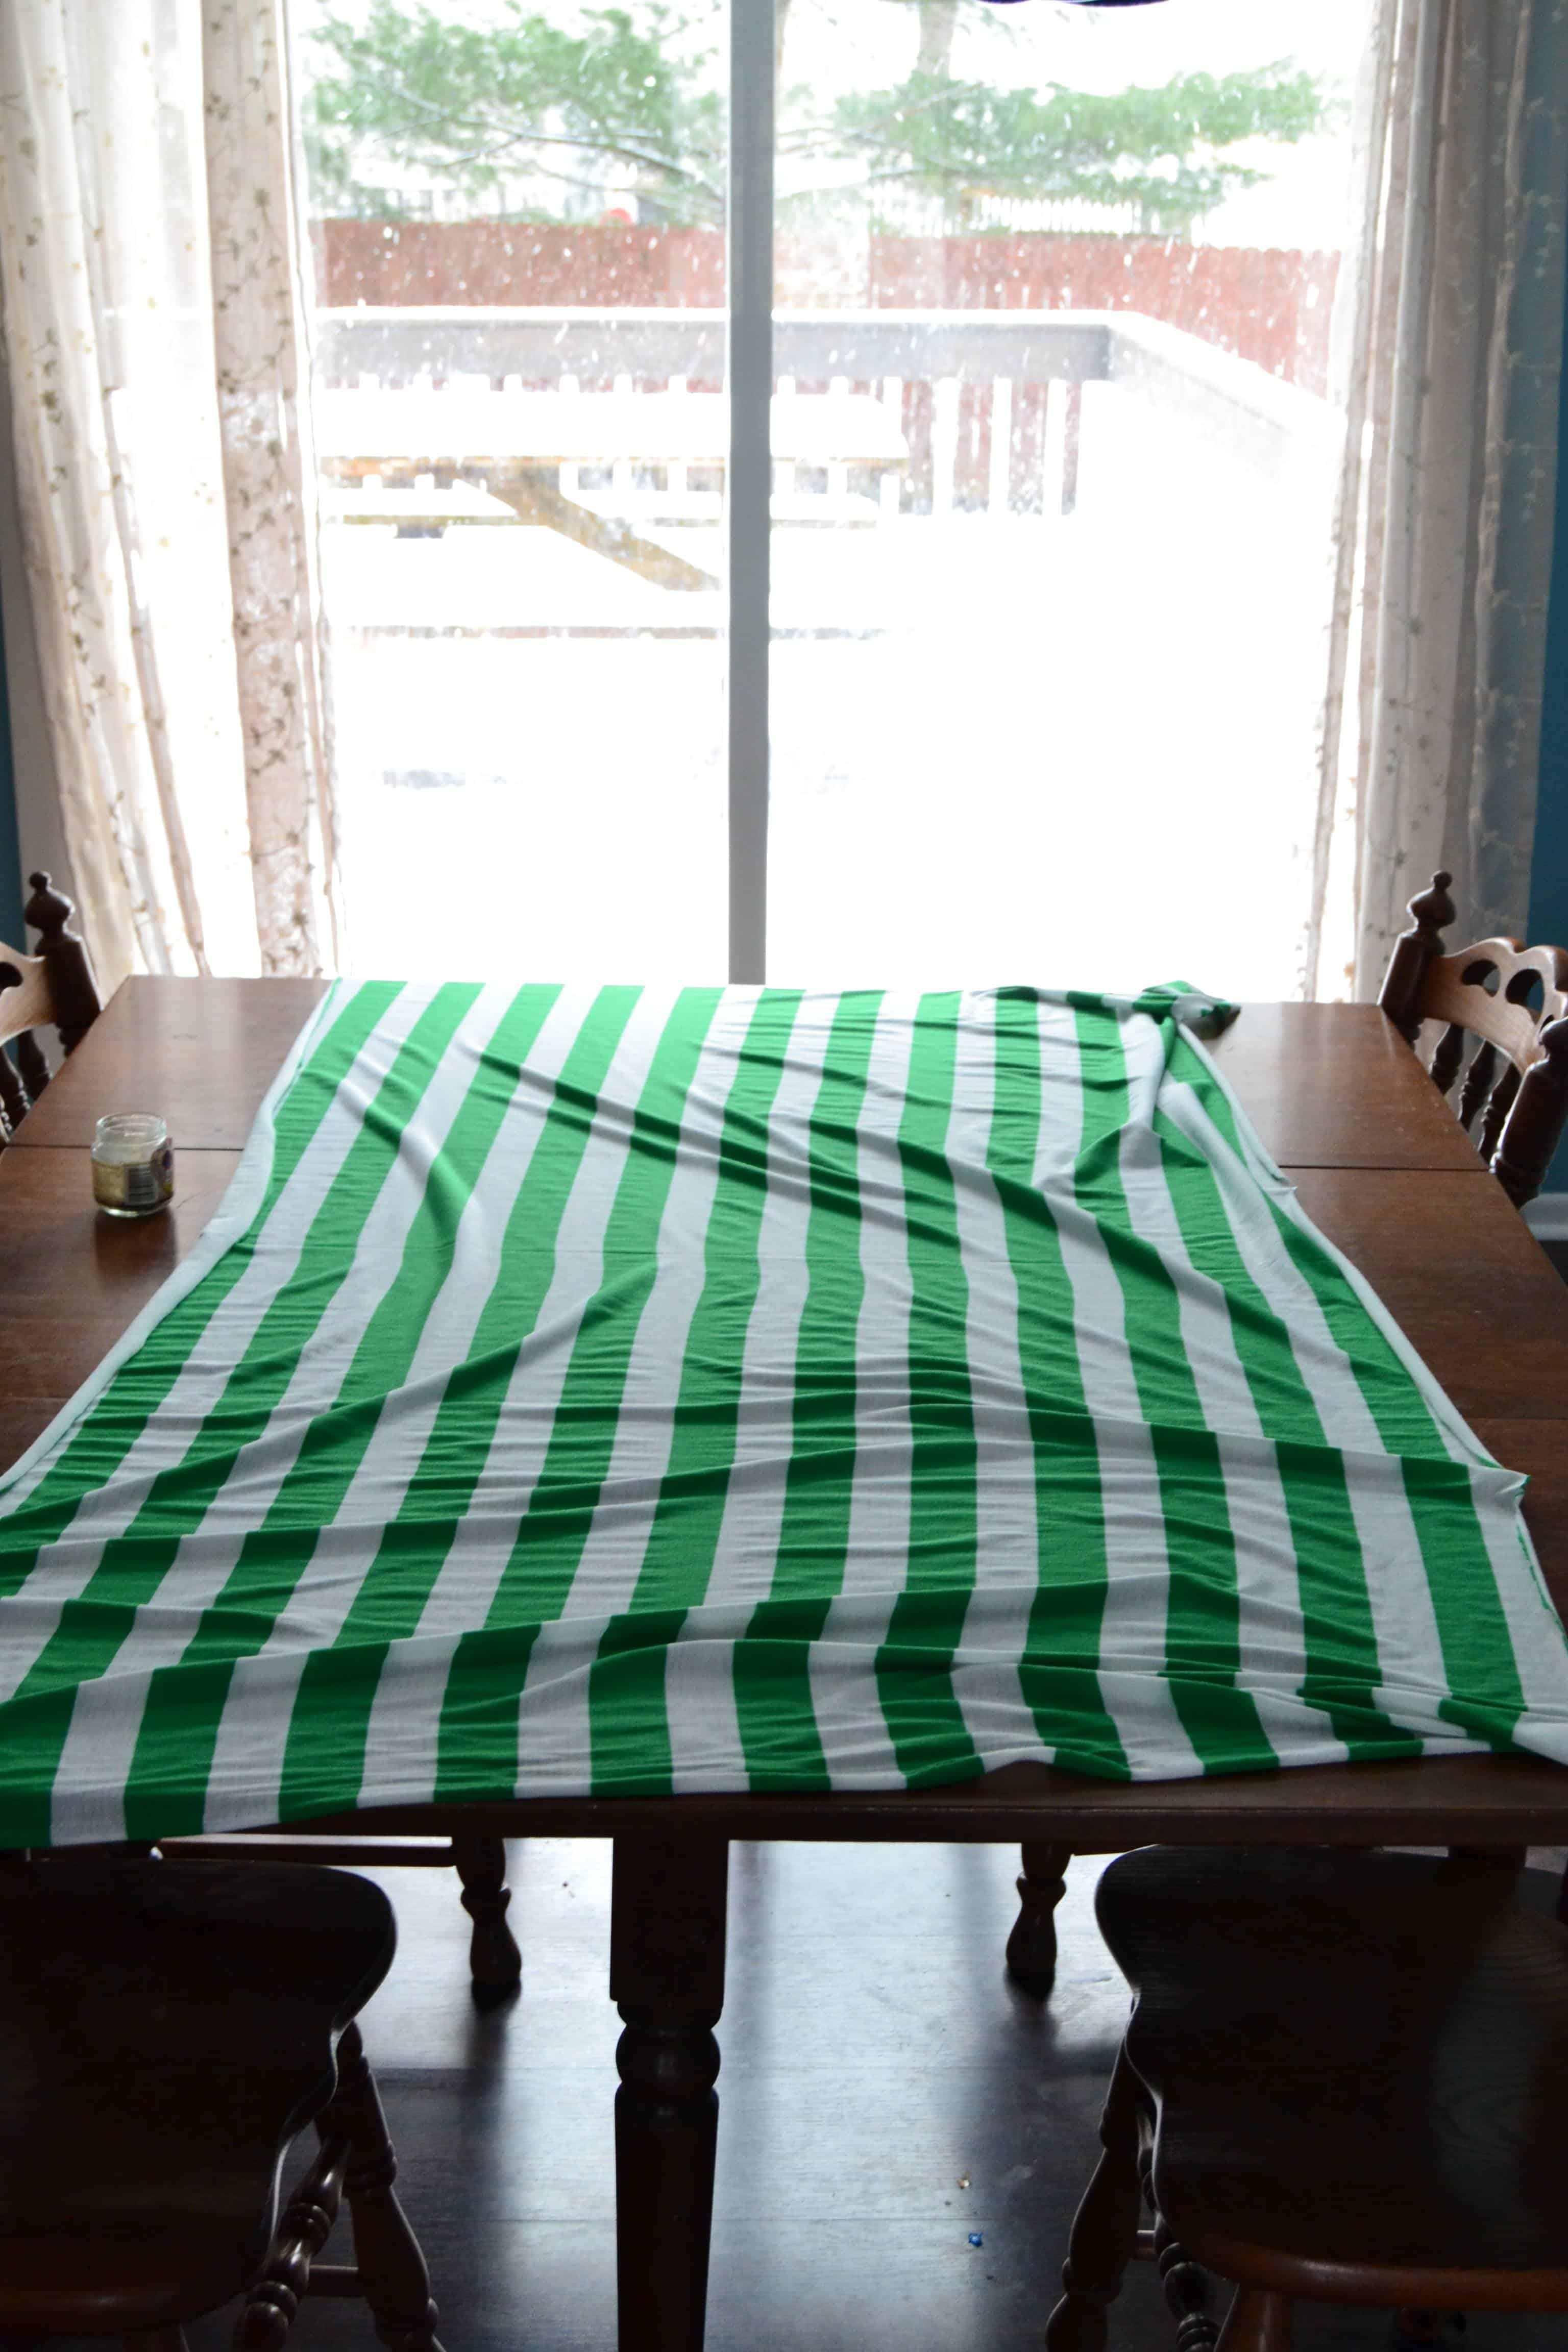 1 yard of striped knit fabric laid out on a table